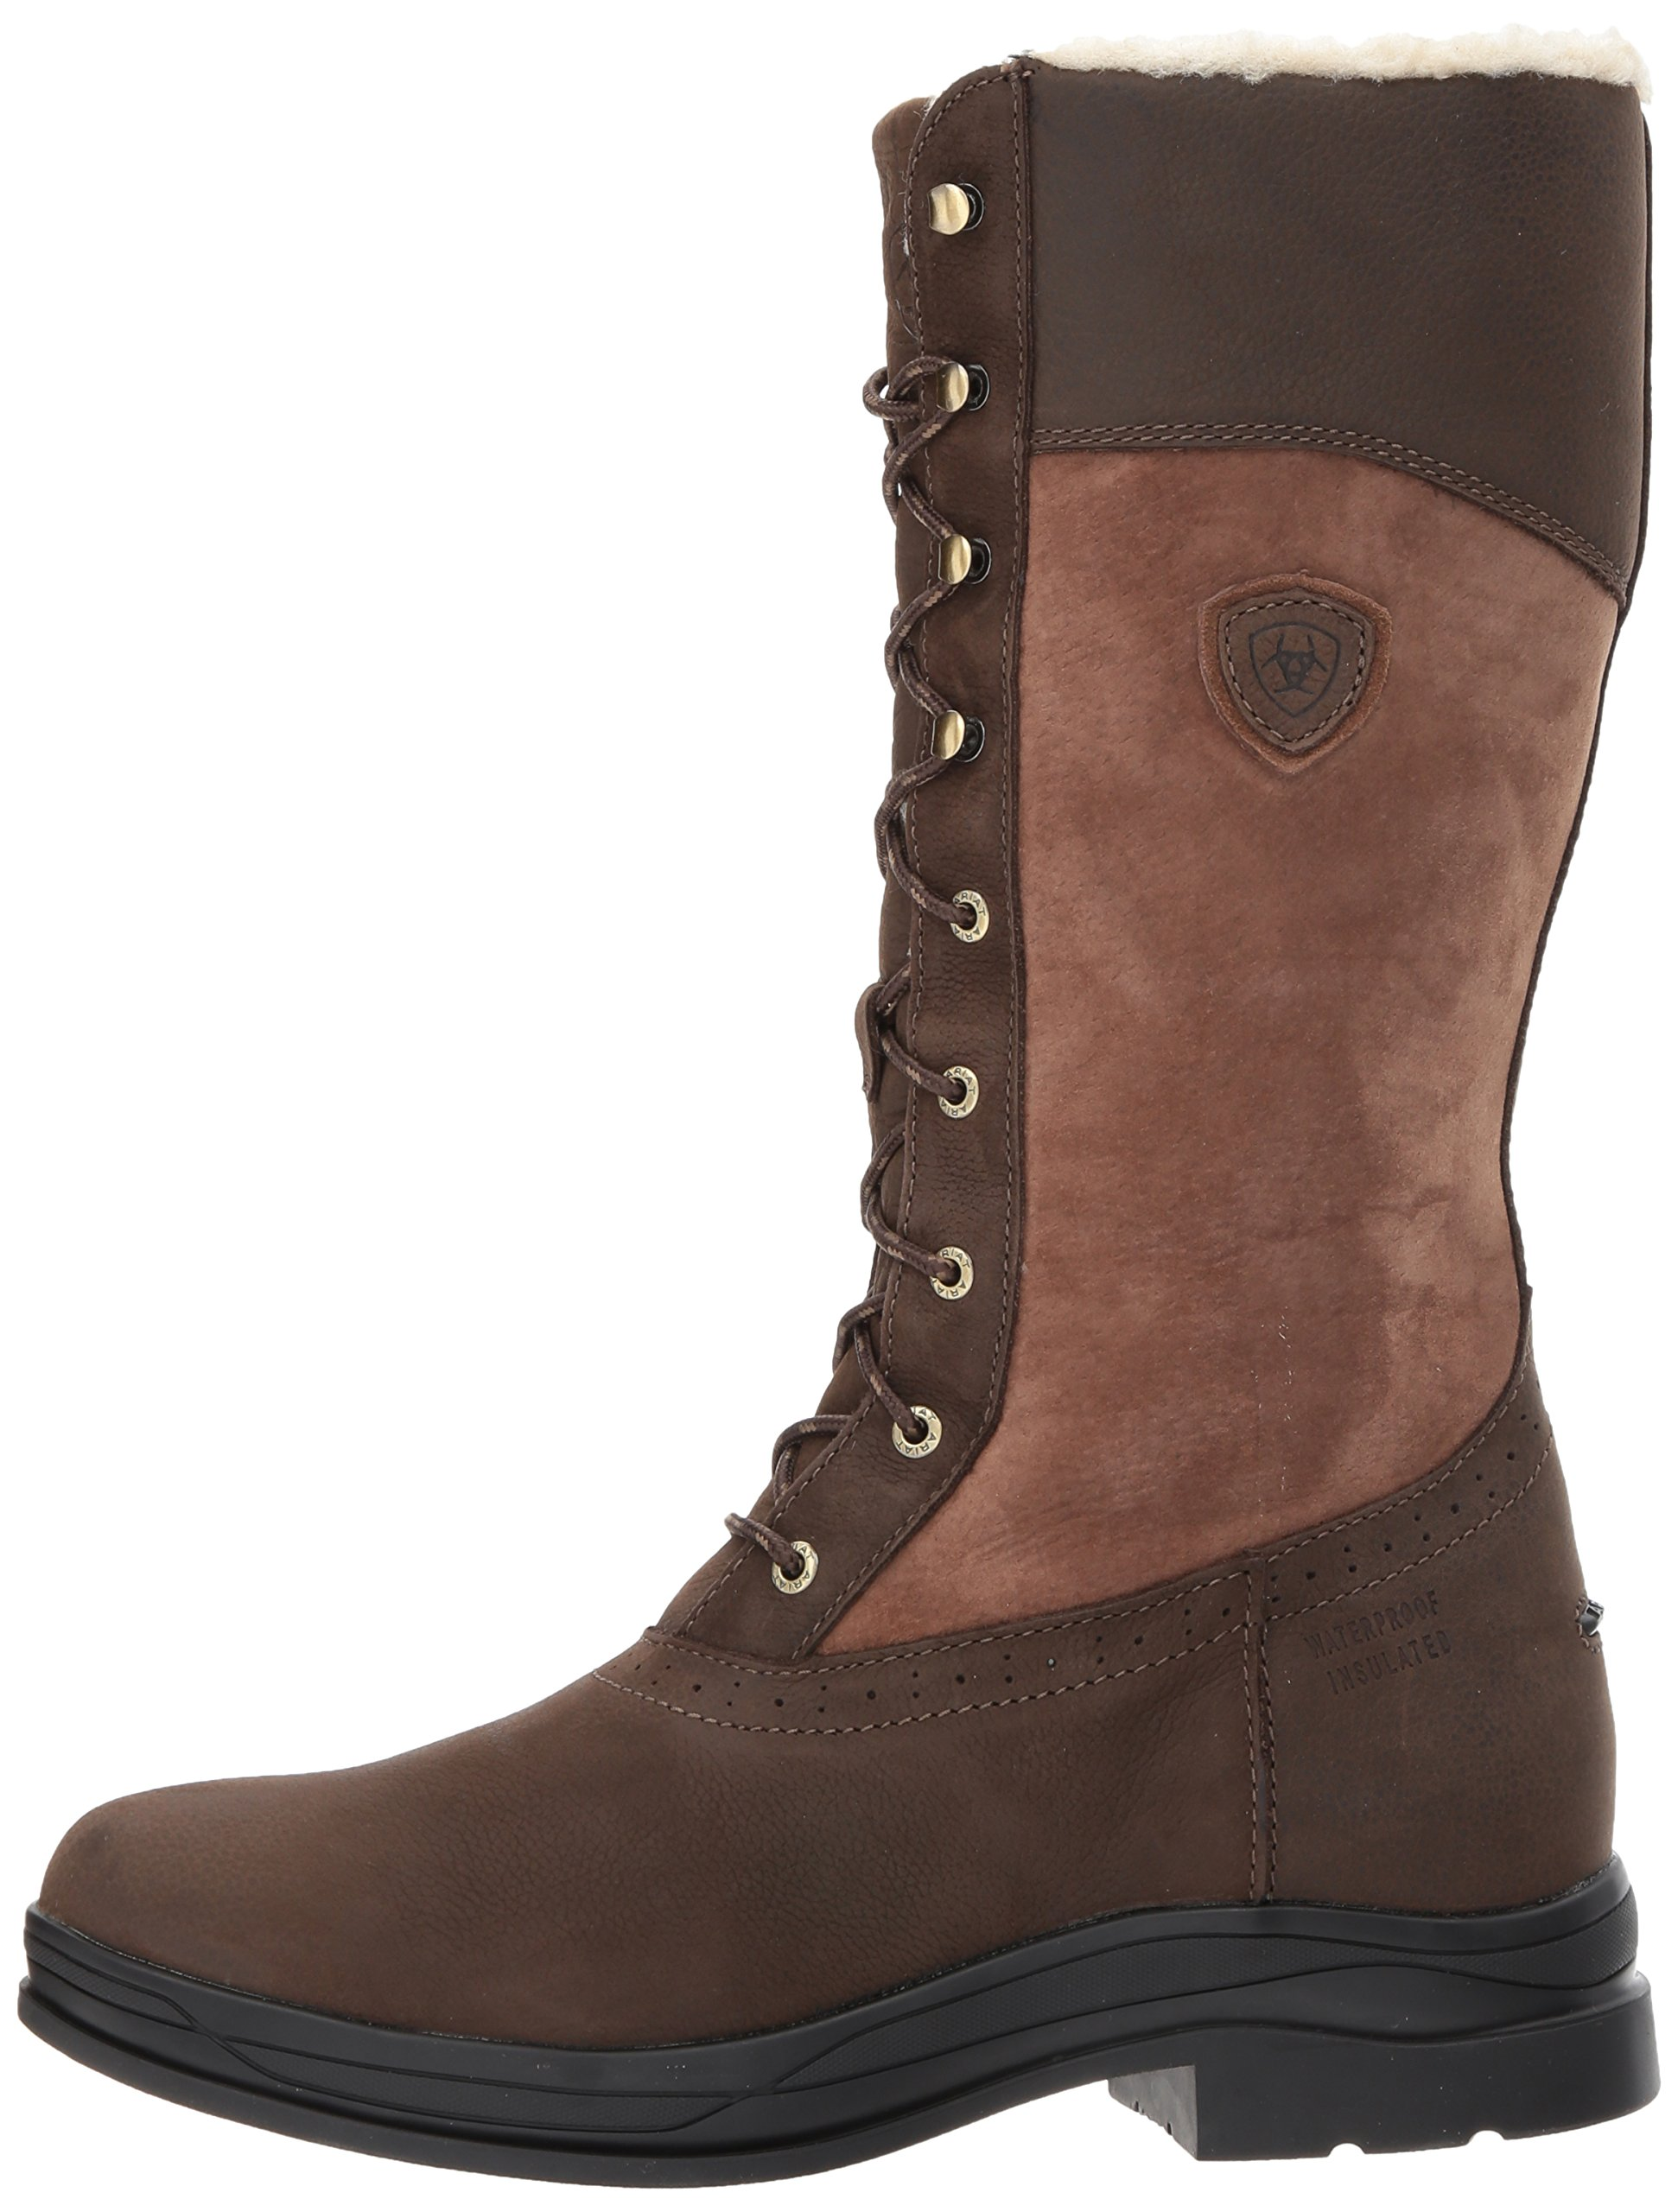 Ariat Women's Wythburn H2O Insulated Country Boot, Java, 7.5 B US by Ariat (Image #5)